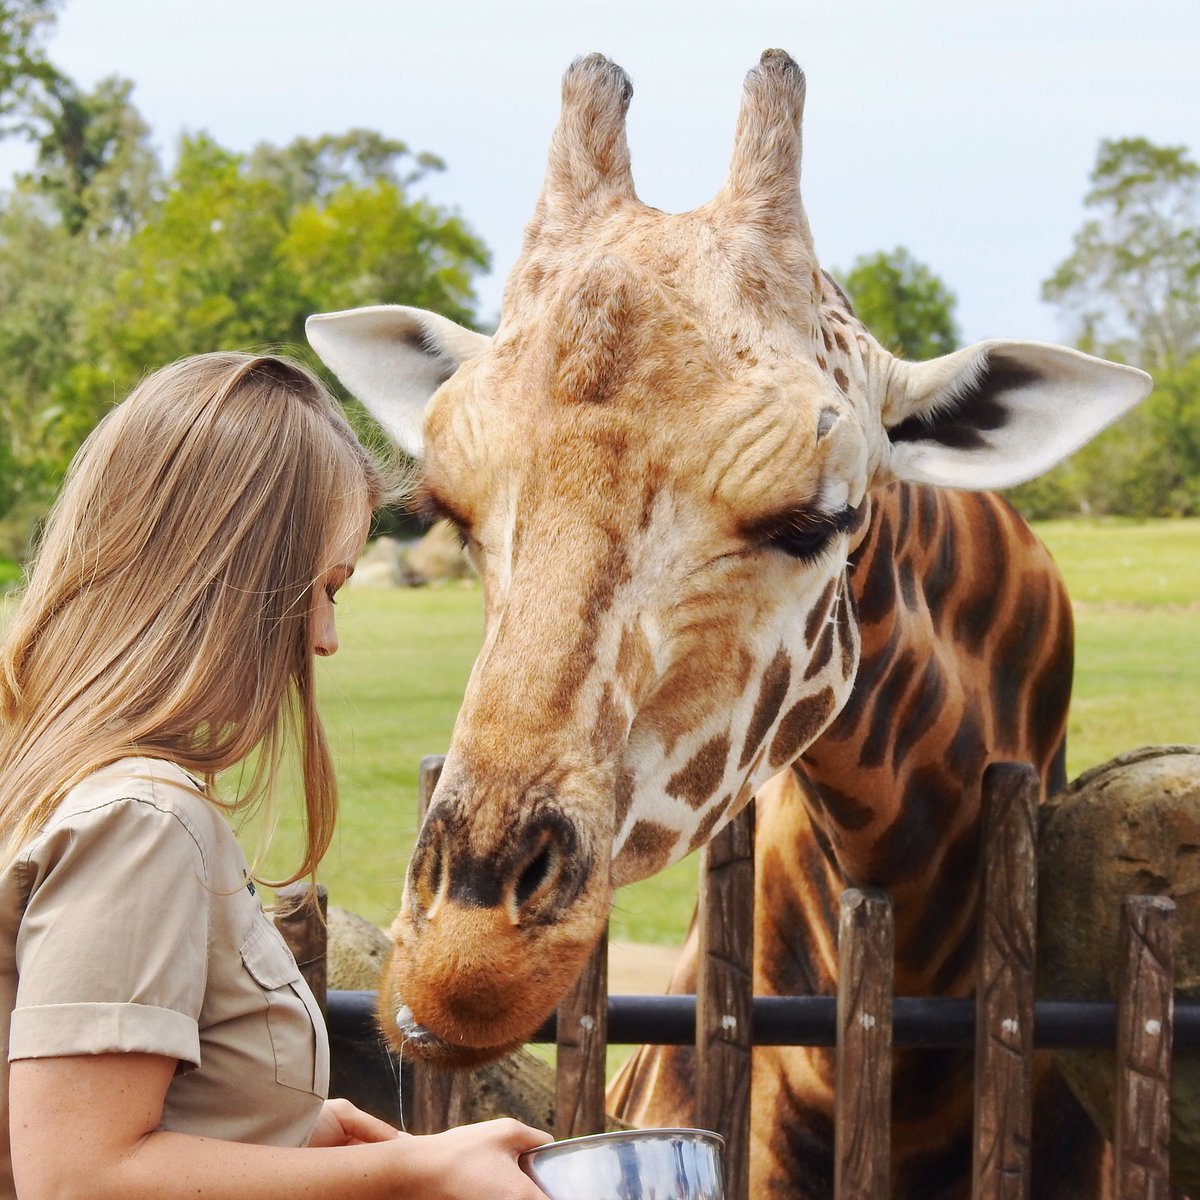 Lifelong memories made every day @AustraliaZoo ☀️ Had to capture this amazing moment one evening when @BindiIrwin and I were spending time with Forrest the giraffe.🦒💛